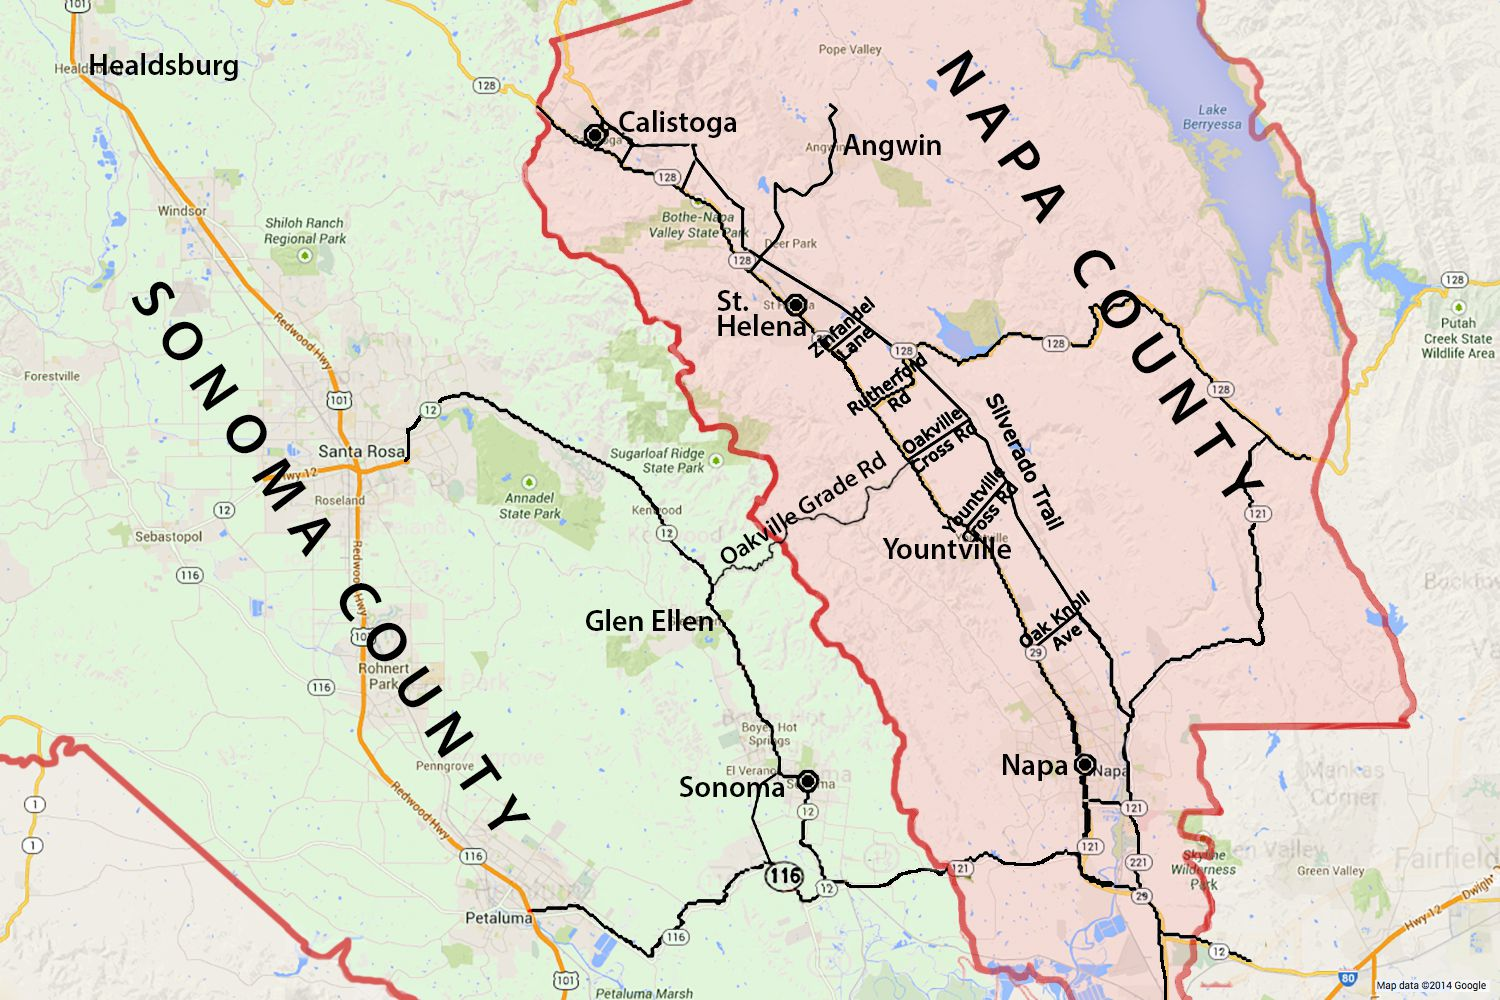 Wine Country Map: Sonoma and Napa Valley